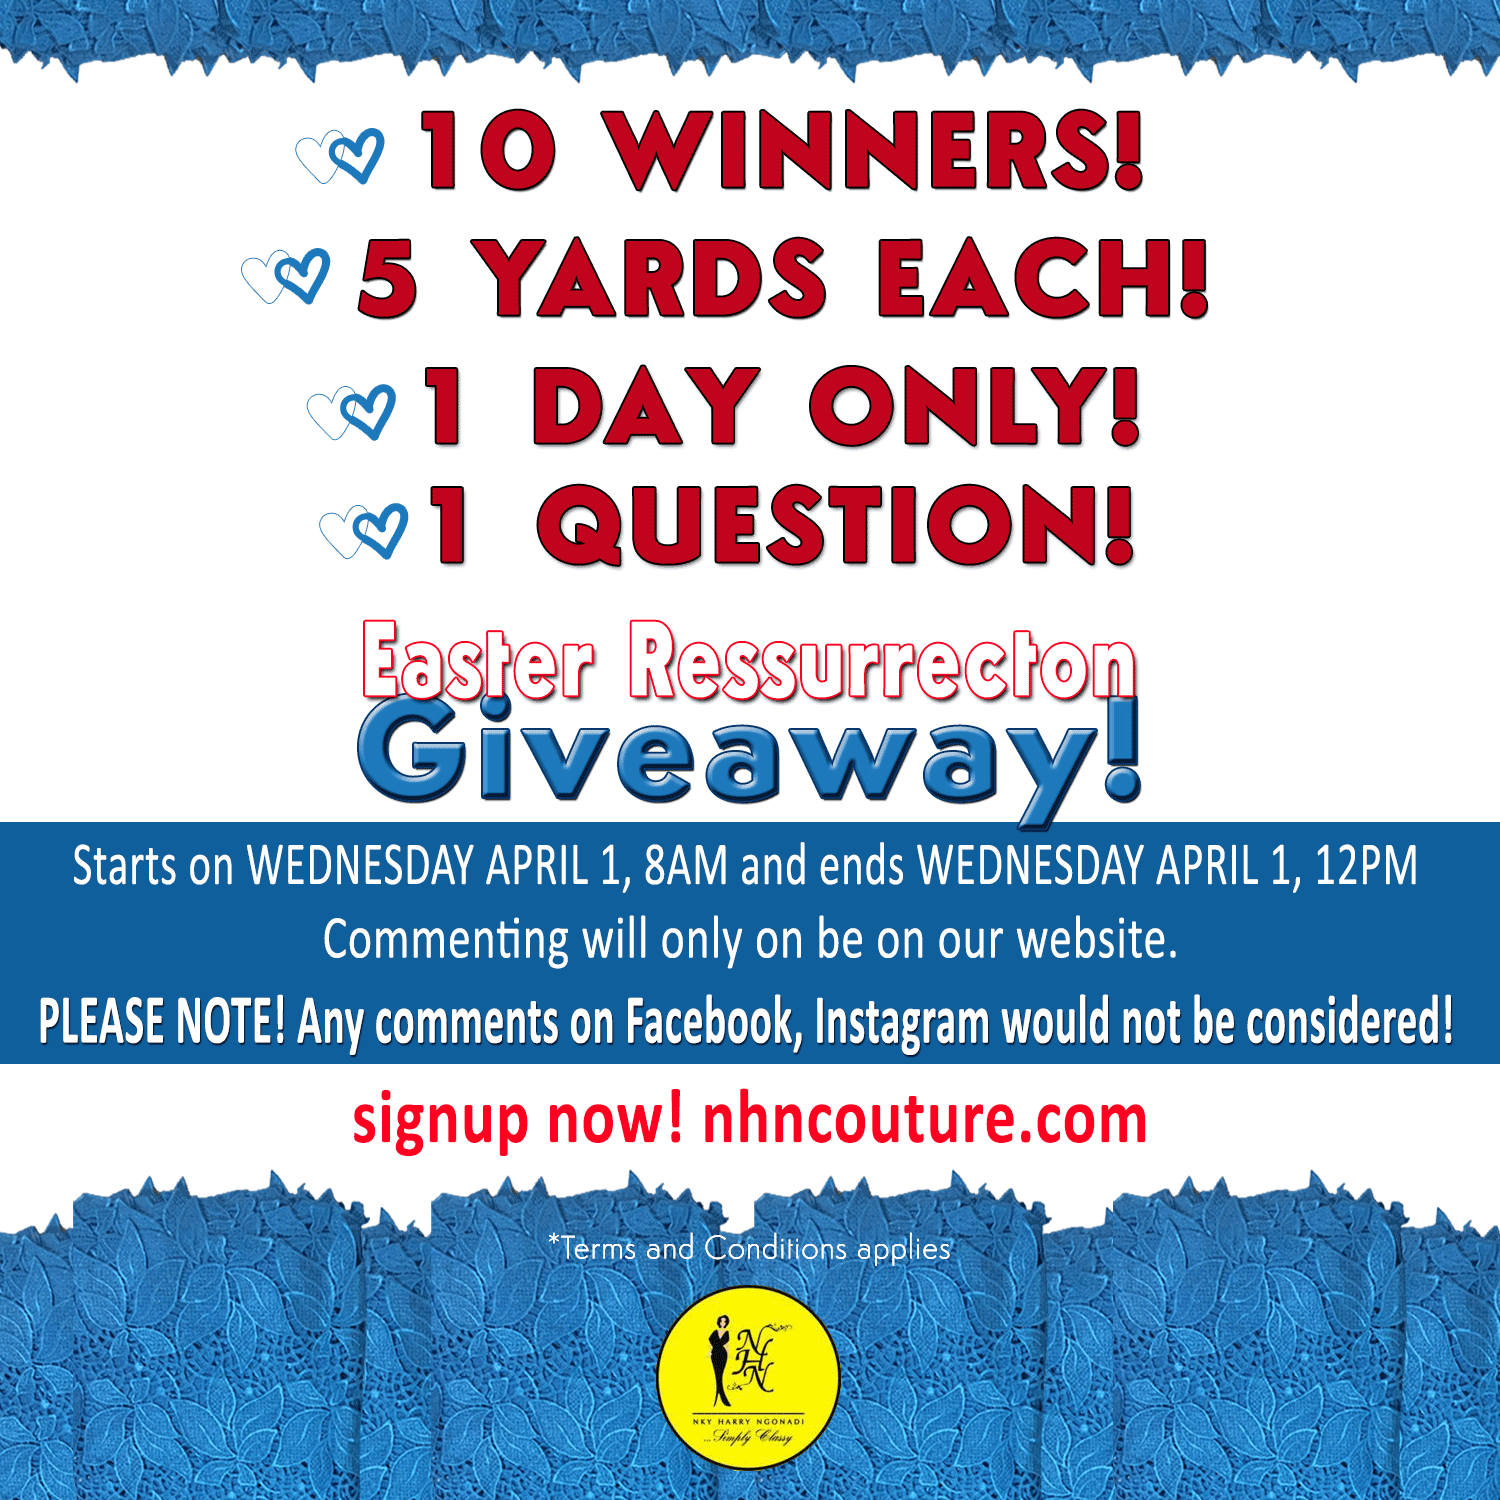 NHN-Couture-Sharing-and-Giving-Giveaway